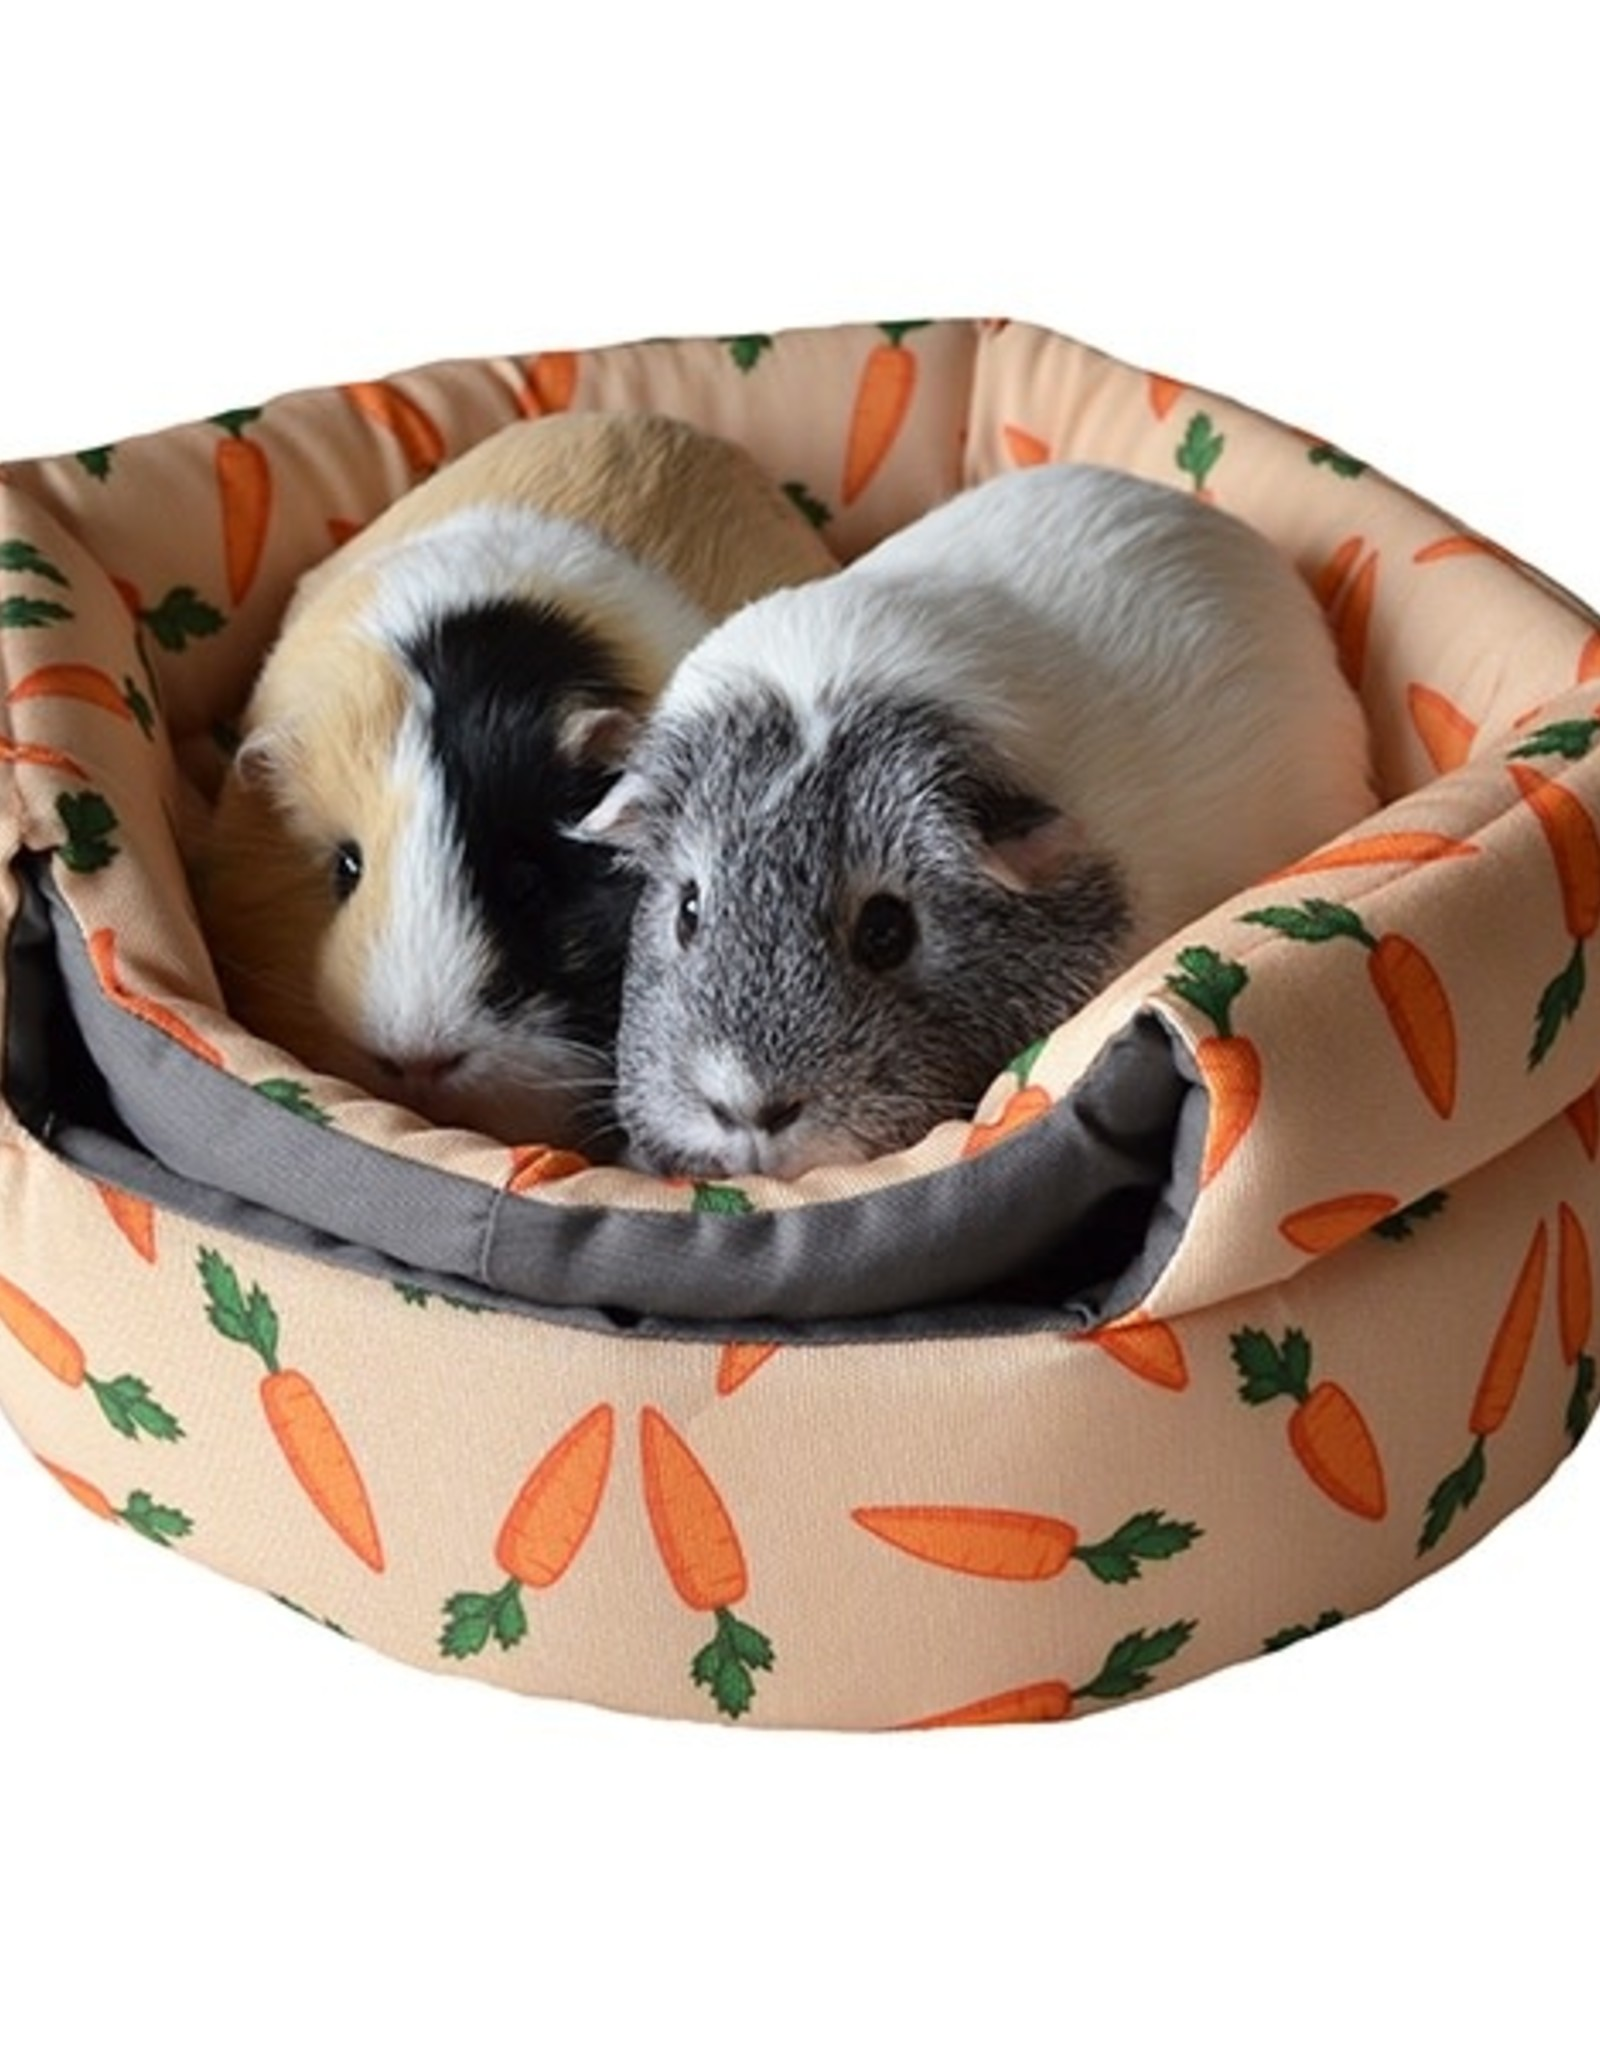 Picture of: 2 In 1 Carrot Design Beehive Small Animal Bed Pet Care By Post